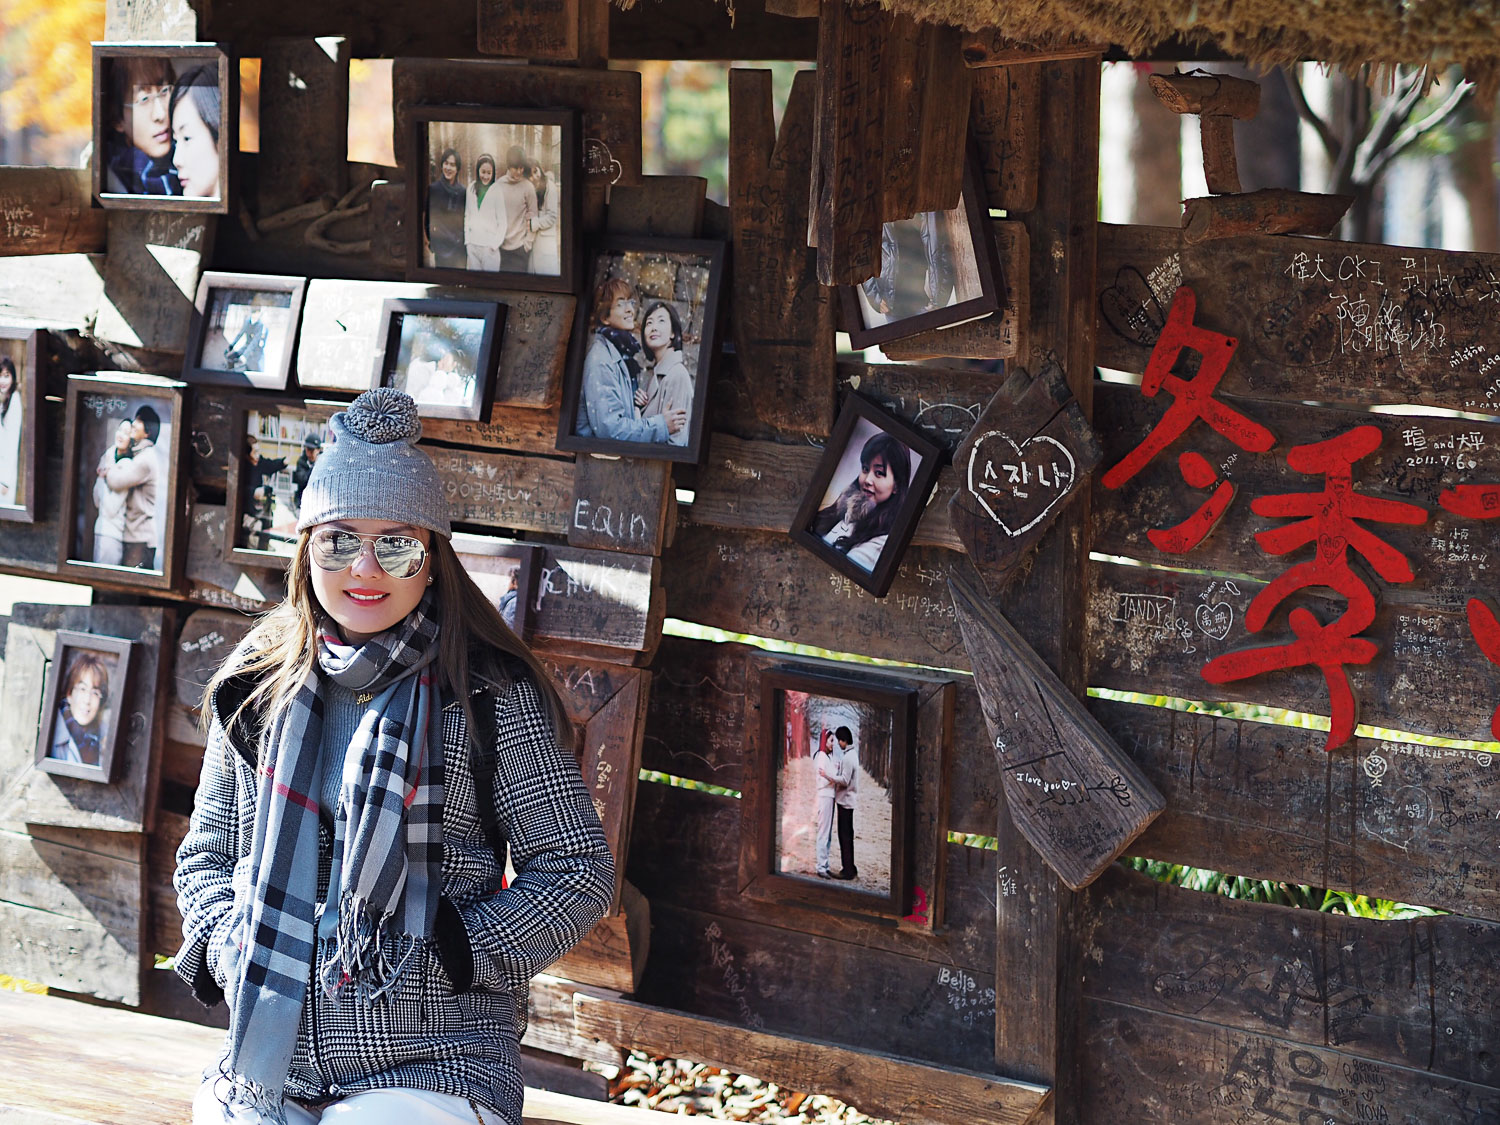 Day 3: Nami Island, Gangchon Rail Park & Petite France Tour